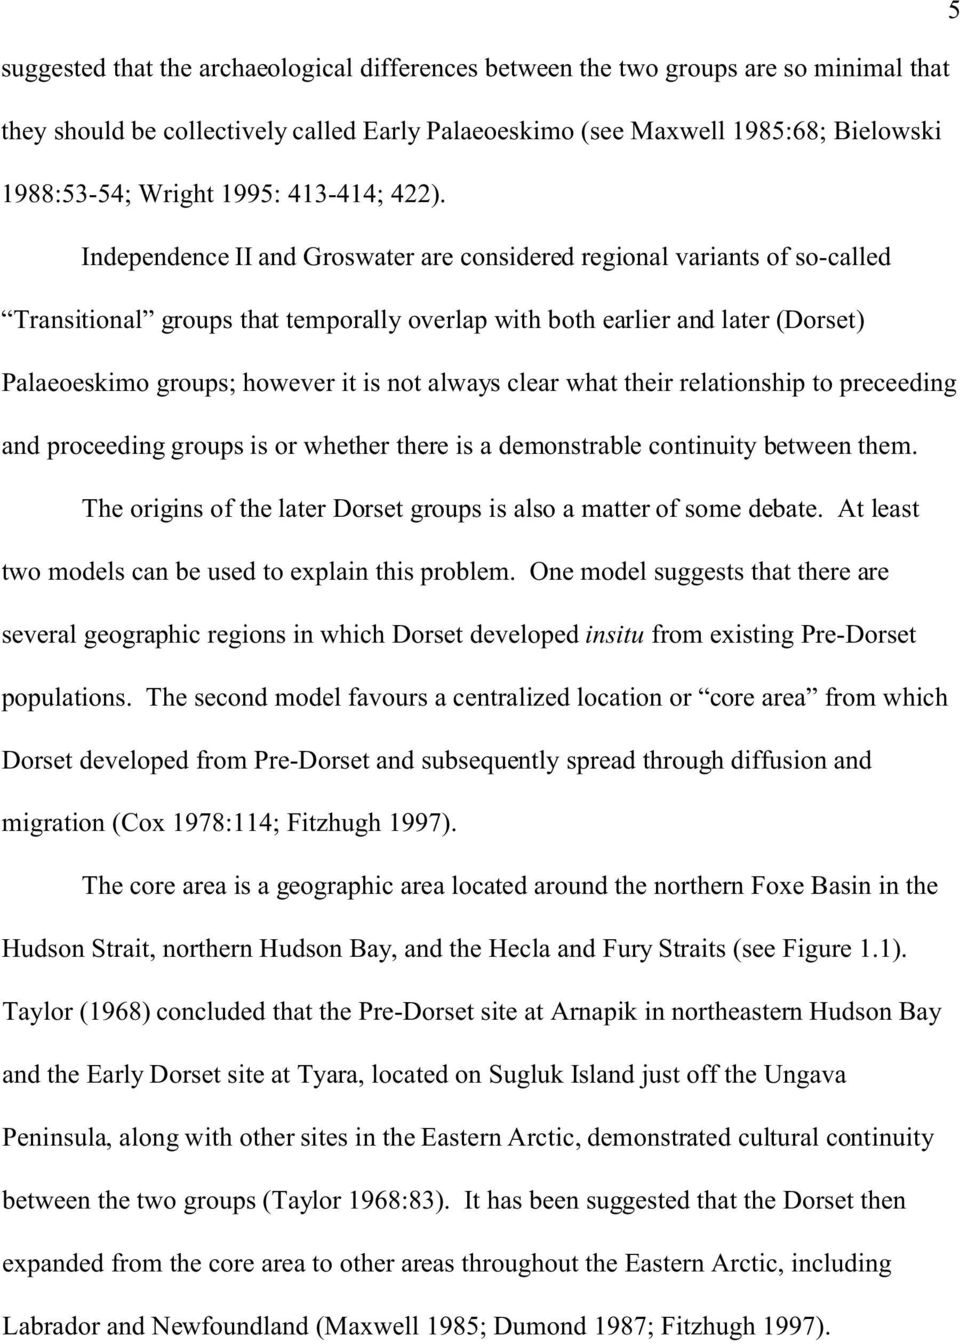 Independence II and Groswater are considered regional variants of so-called Transitional groups that temporally overlap with both earlier and later (Dorset) Palaeoeskimo groups; however it is not